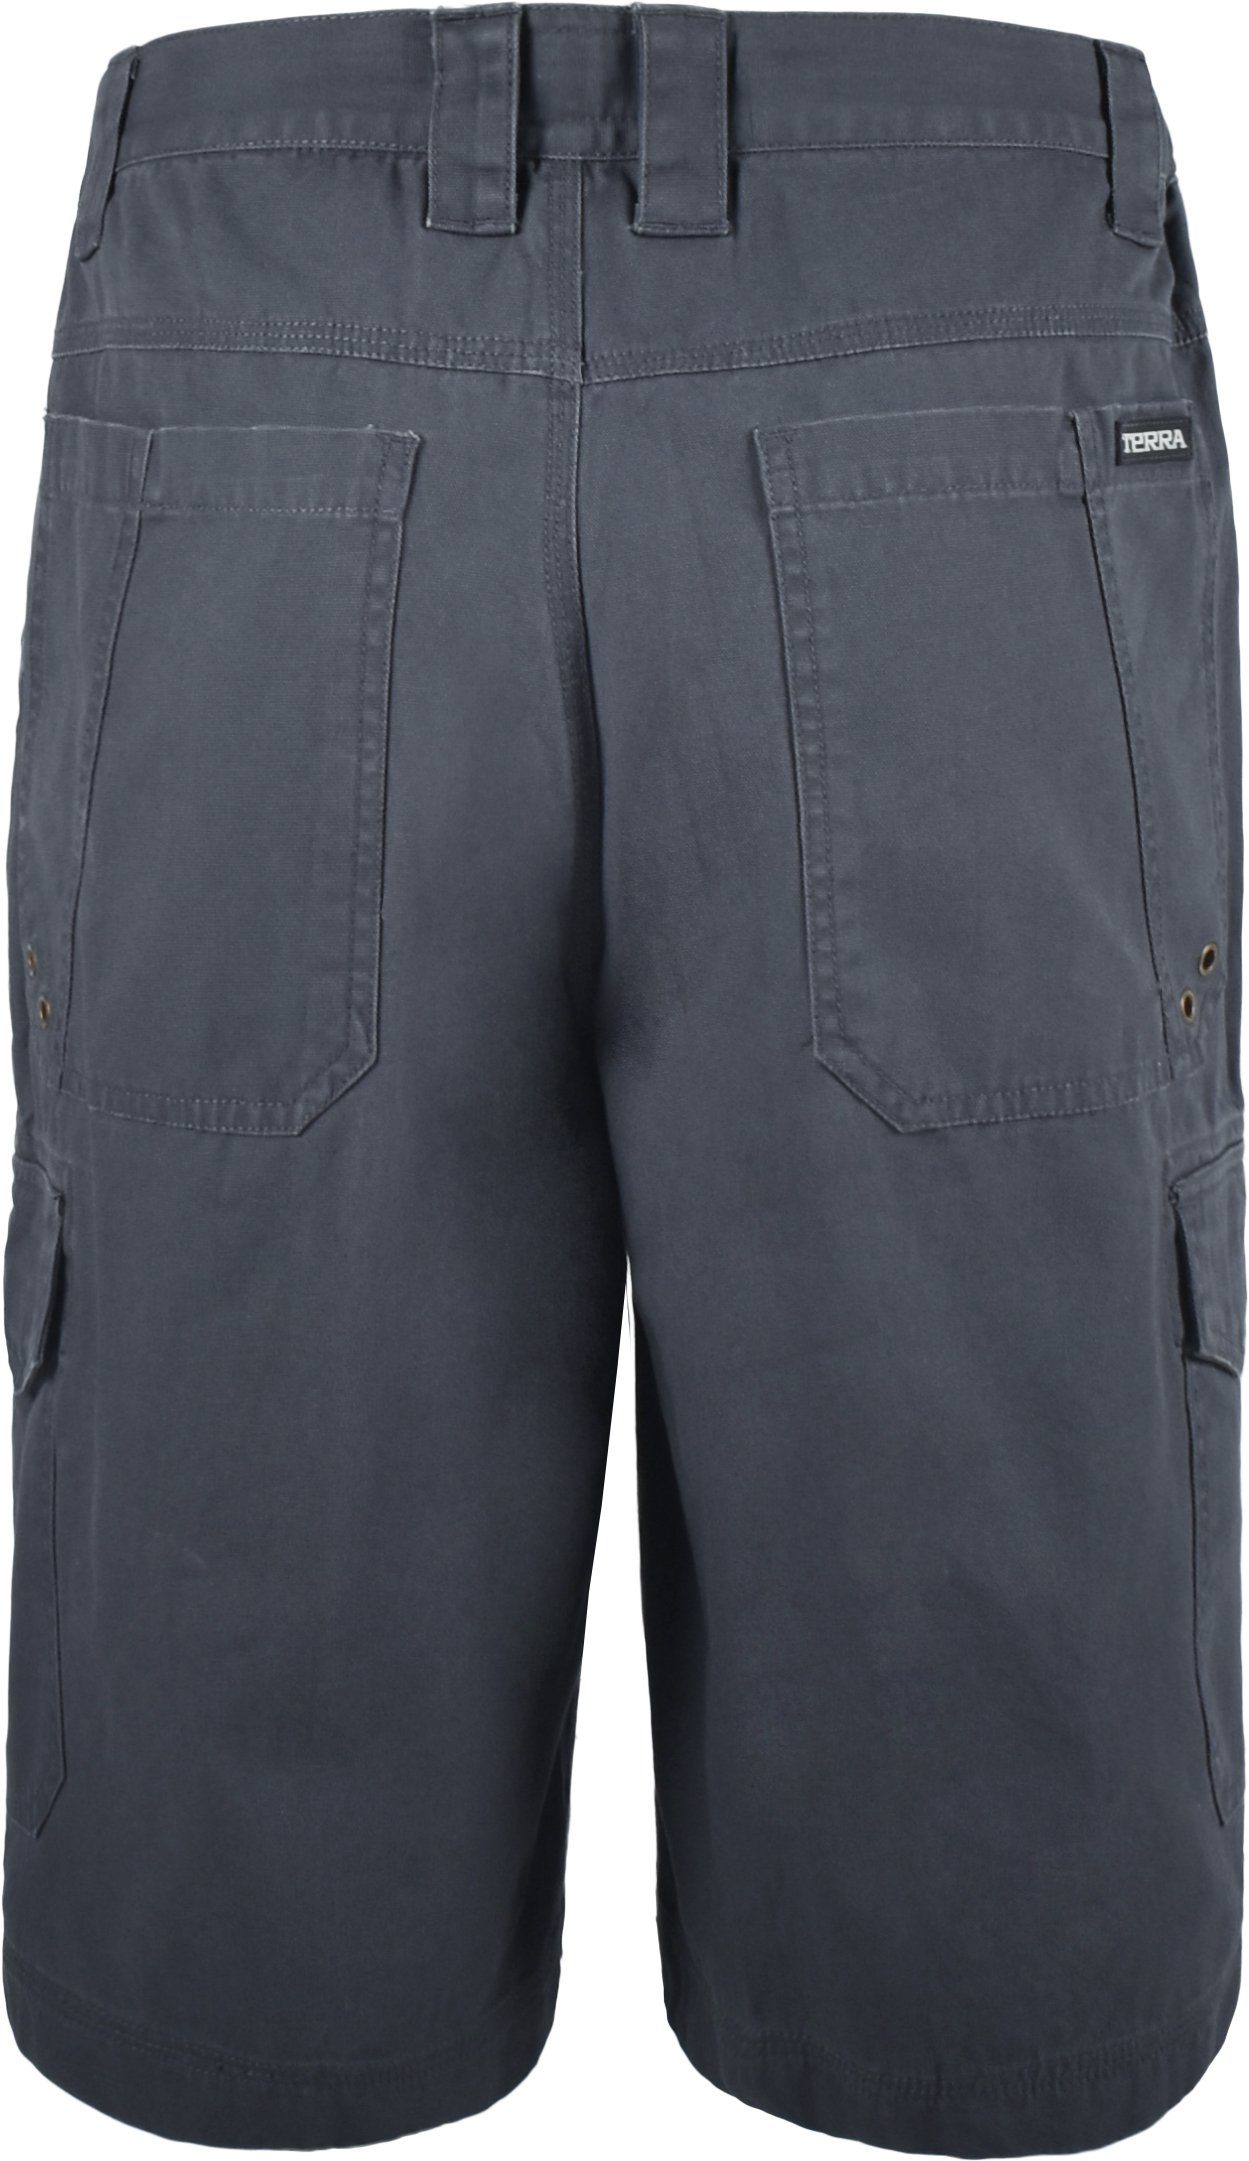 Terra 10-0113-CH34 Vice 100% Cotton Heavy Duty Multi-Pocket Cargo Style Work Short Safety Pants with 34'' Waist by Terra (Image #2)